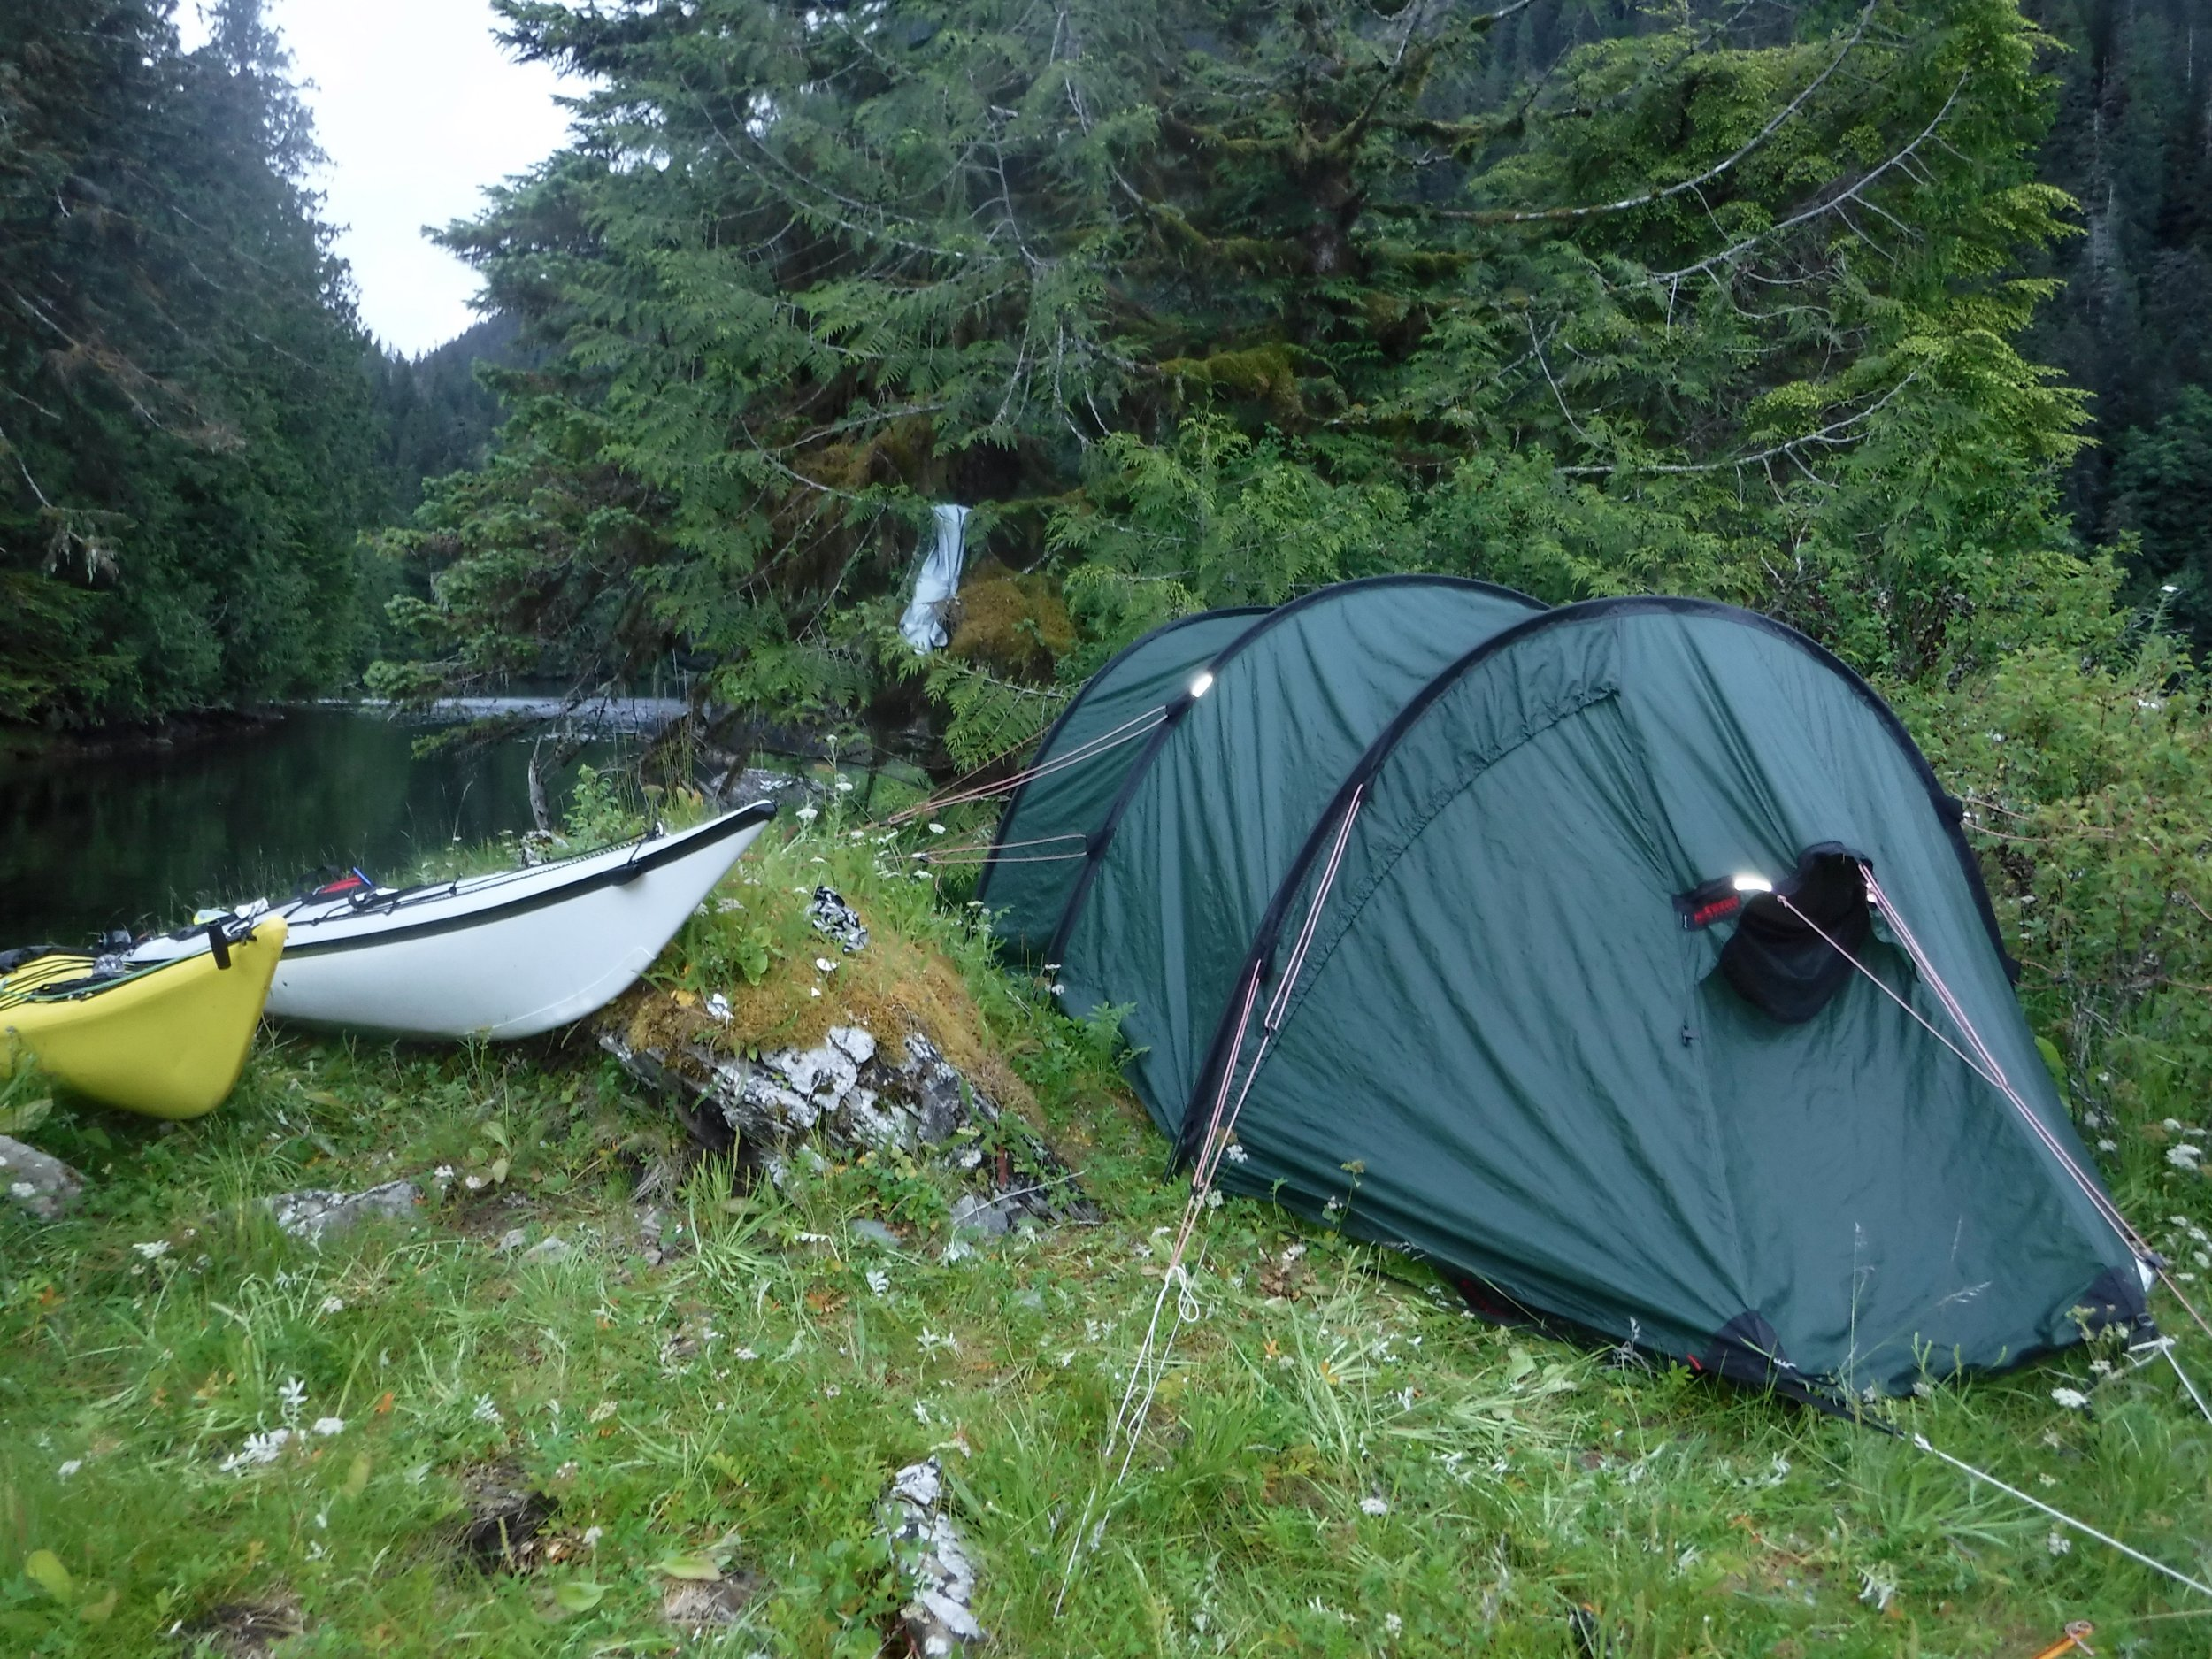 Just enough room for tent and gear,